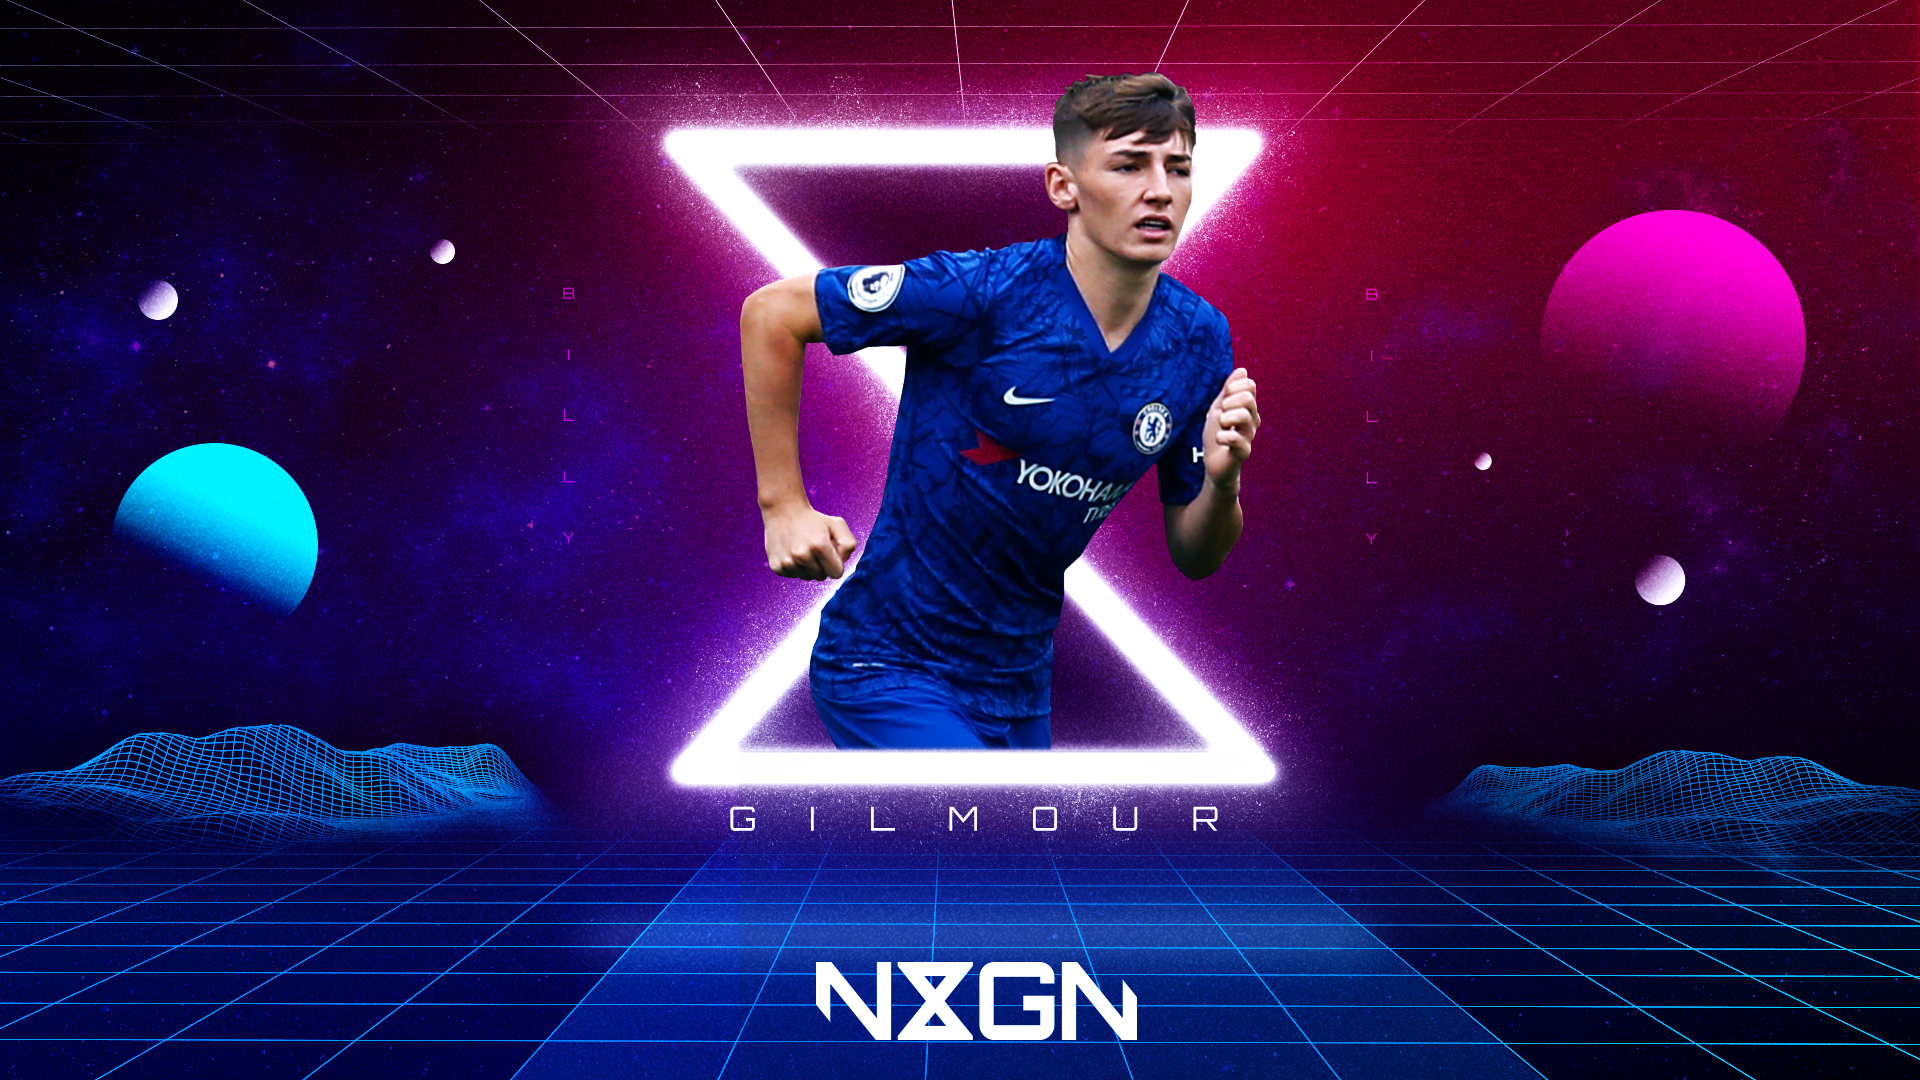 Billy Gilmour: Inside the rise of Chelsea and Scotland's 'new Modric'